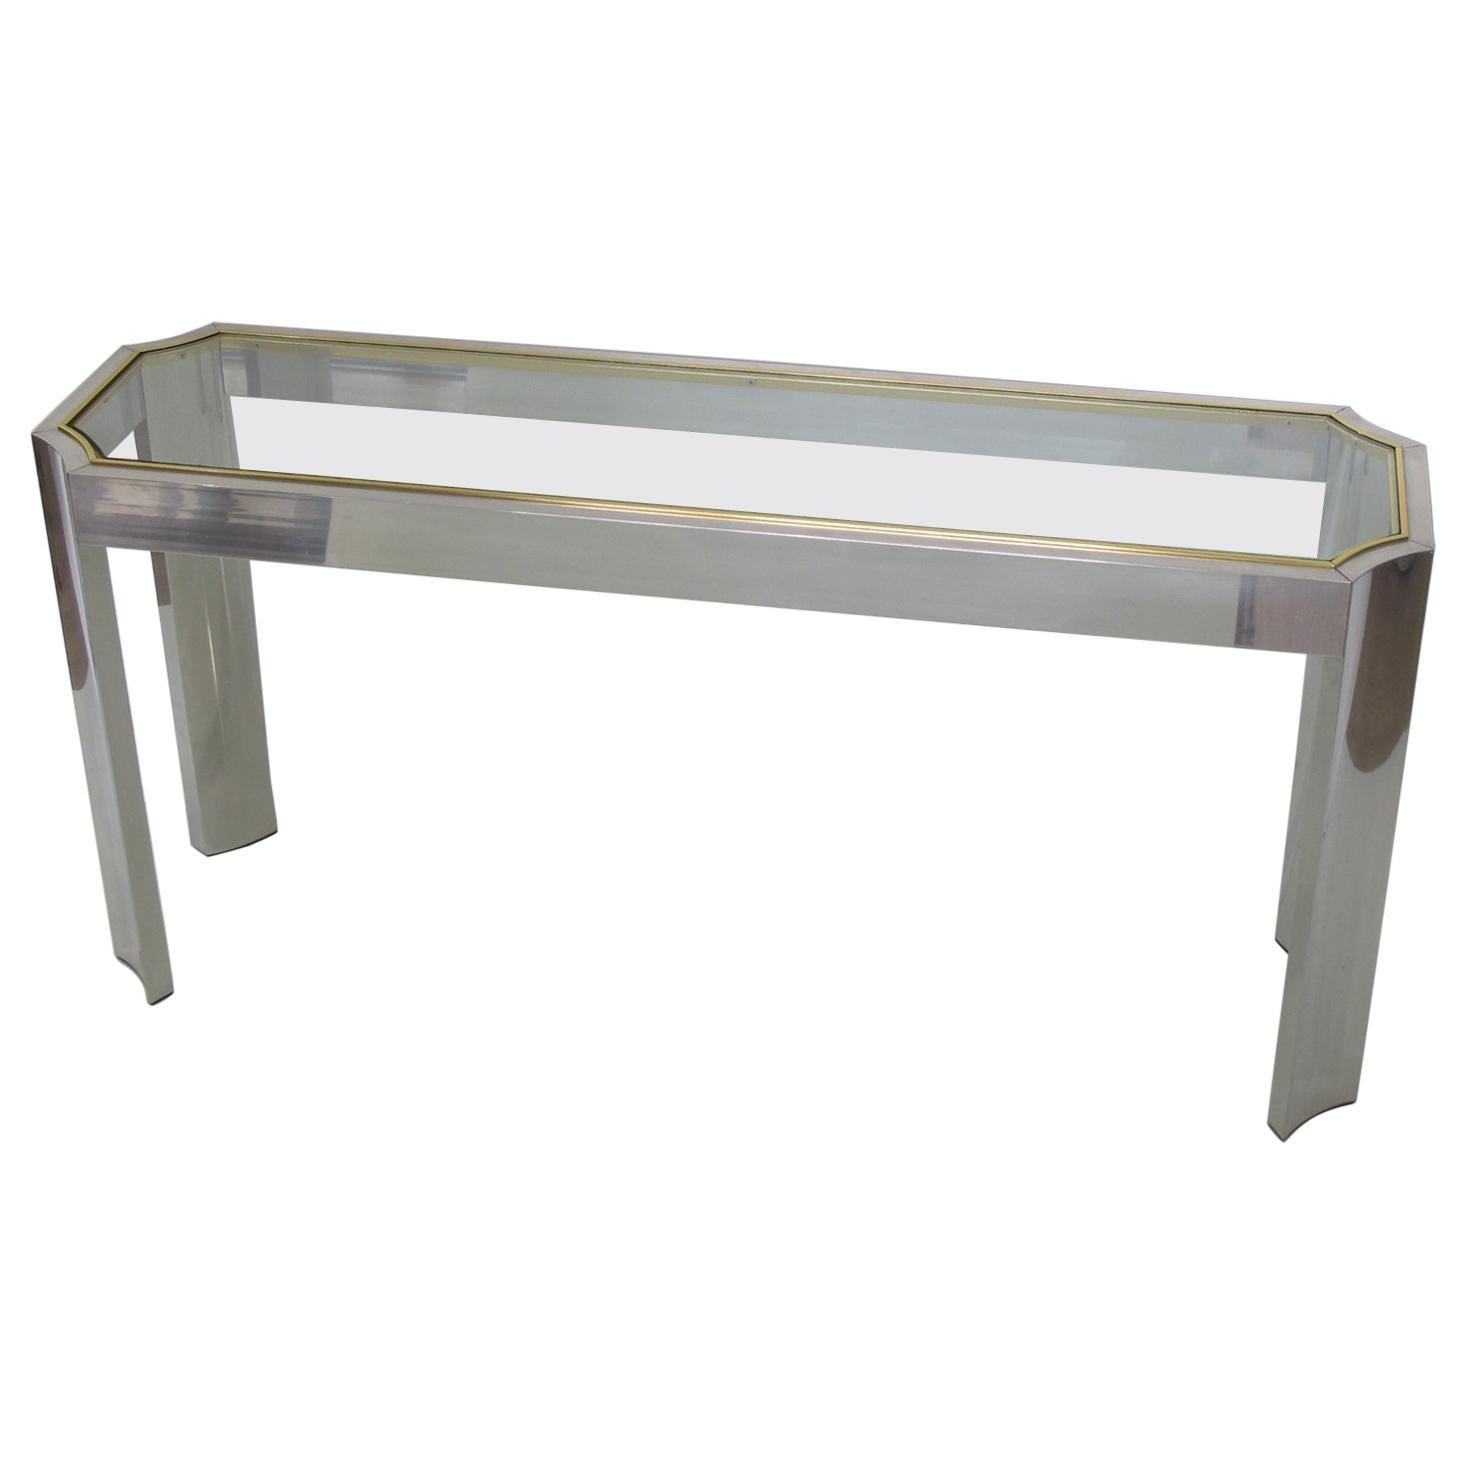 1970s Aluminum and Brass Console Sofa Table with Glass Top